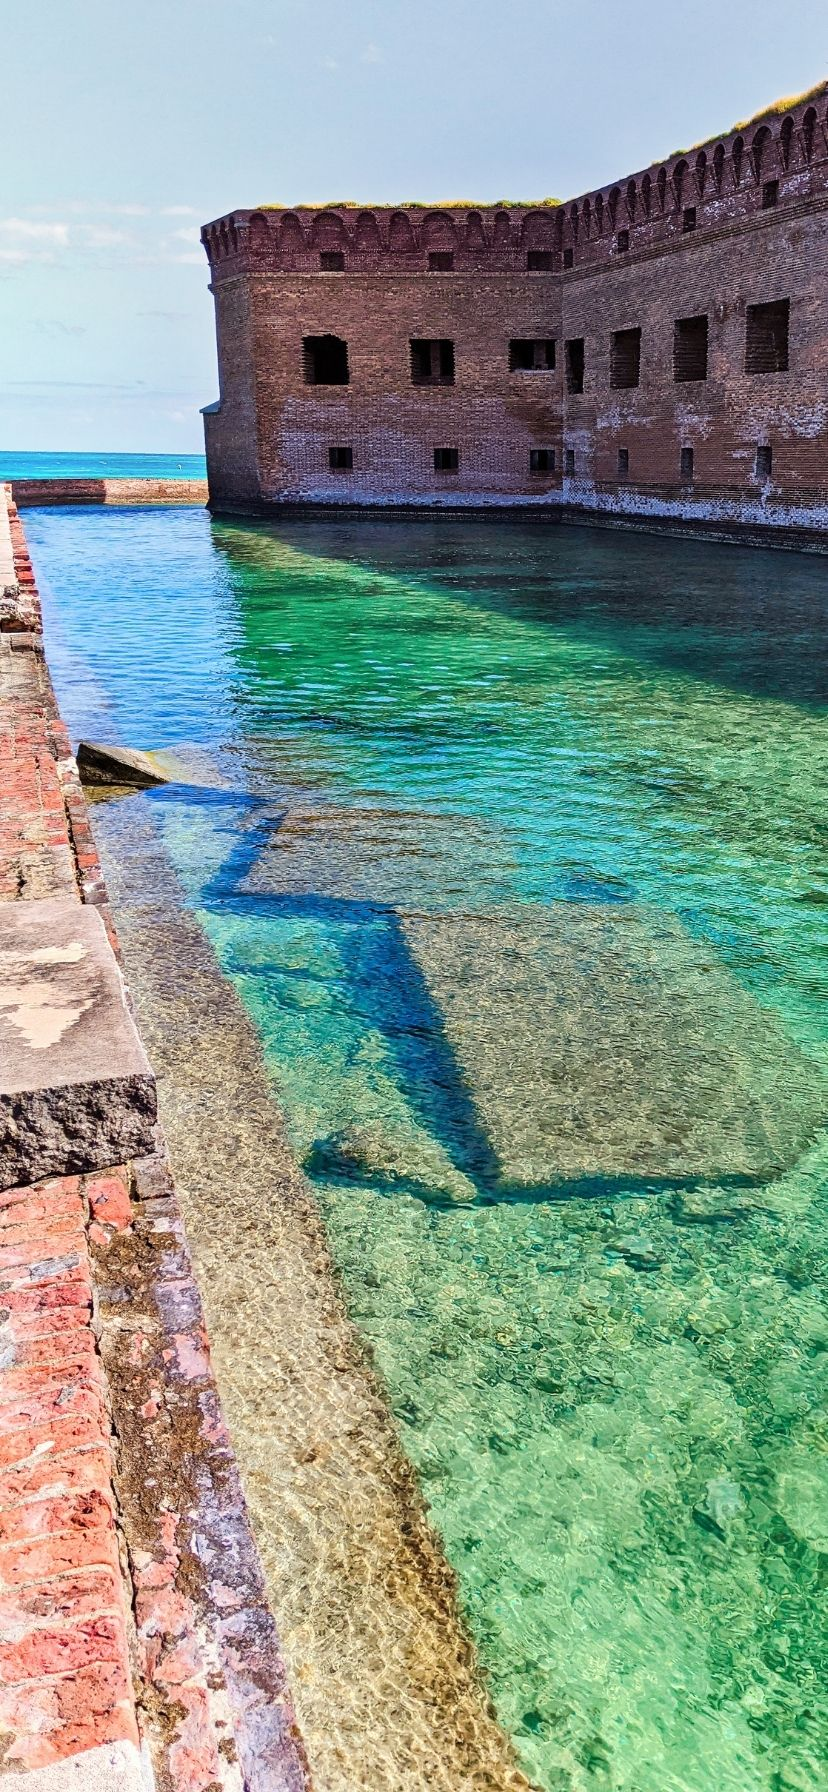 Turquoise water of moat around Fort Jefferson, Dry Tortugas National Park, Florida